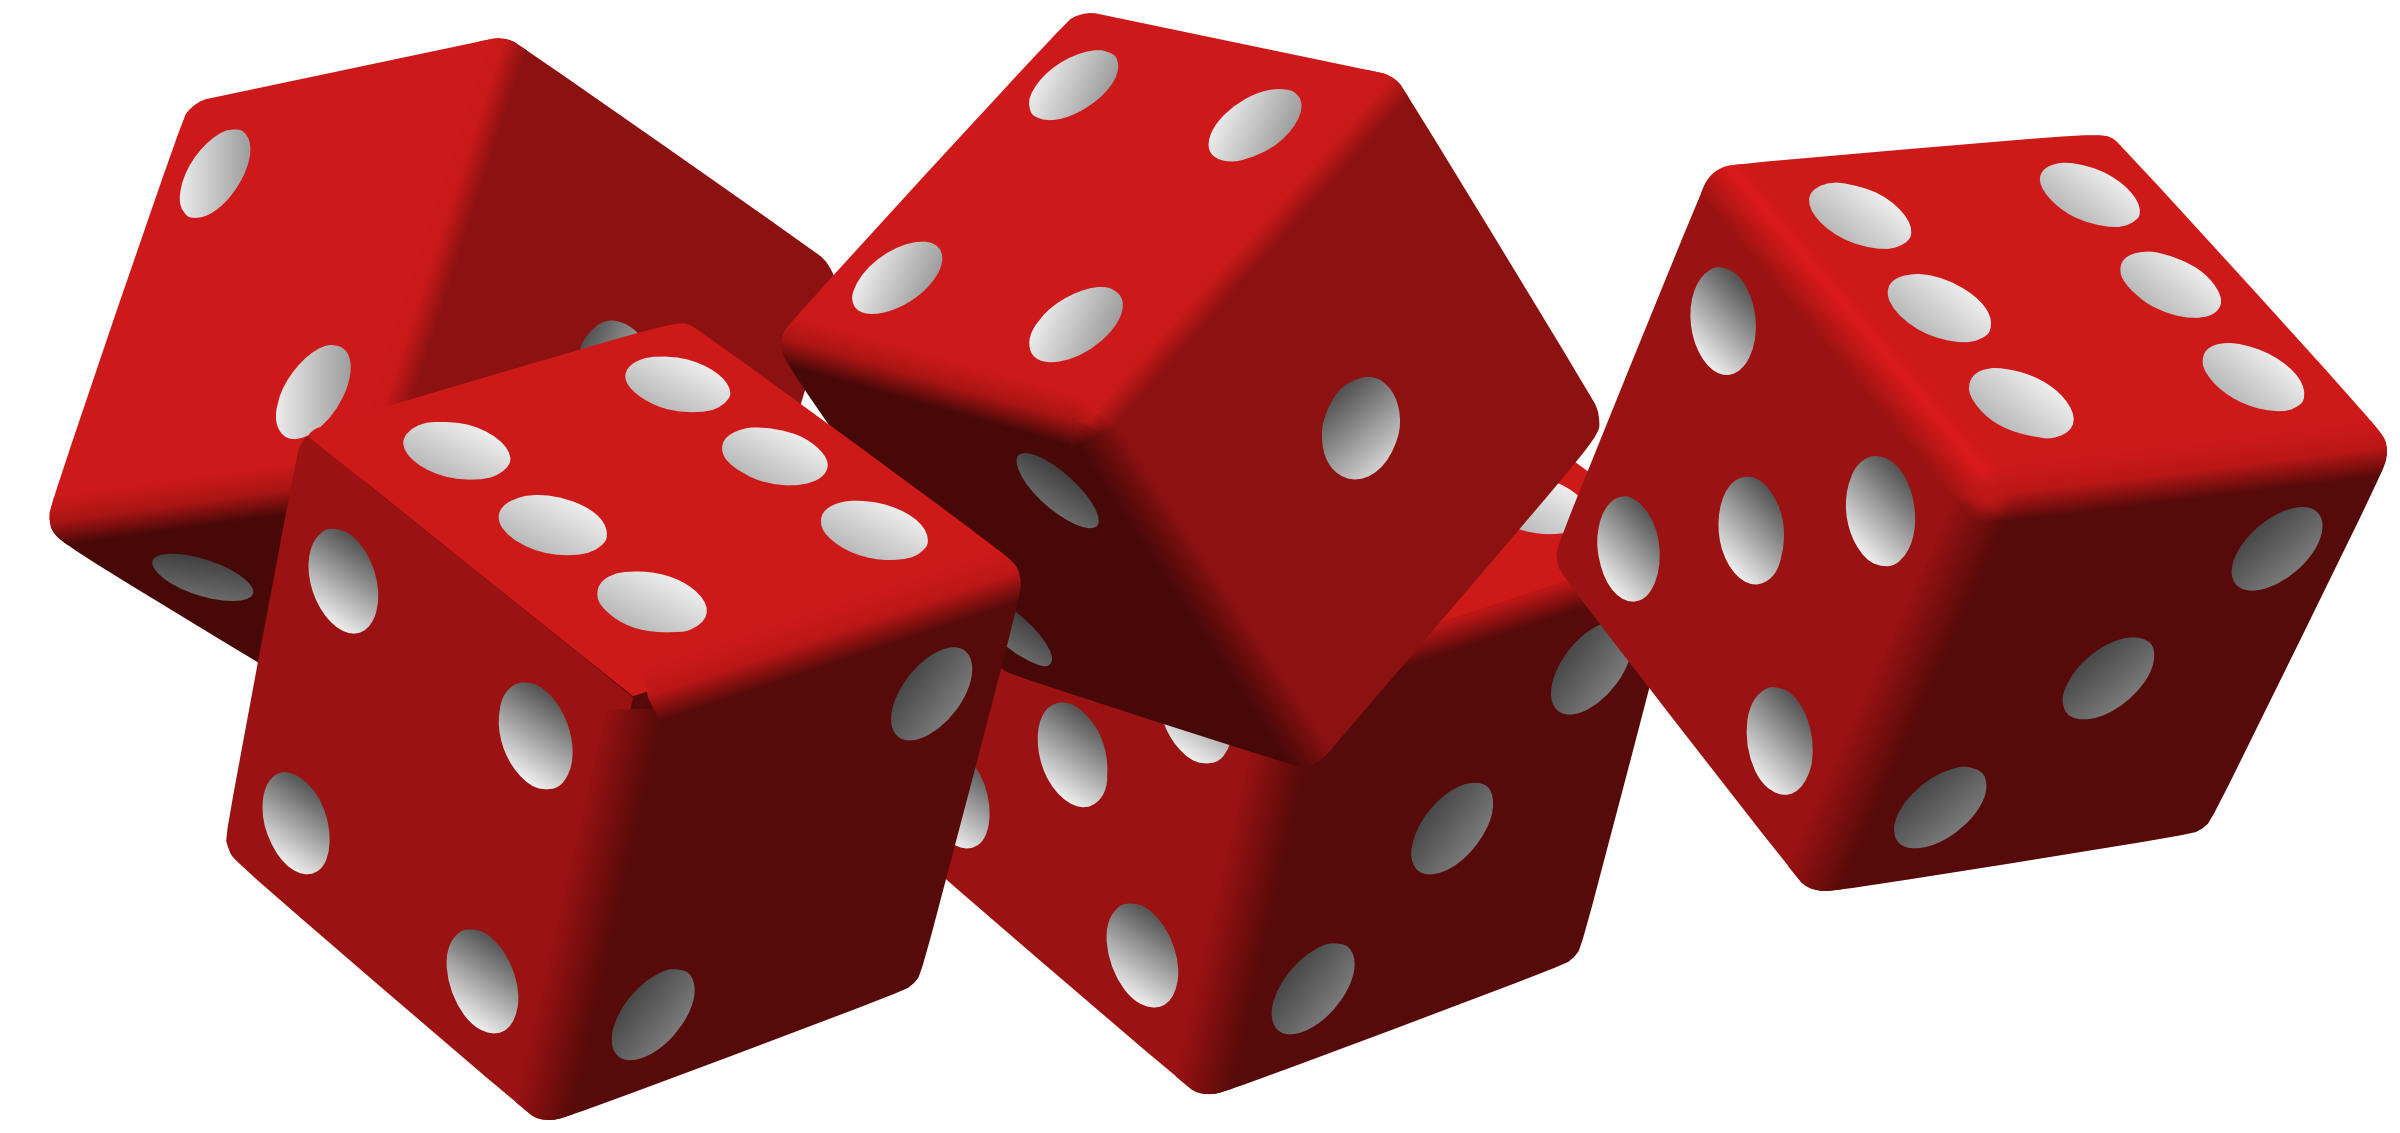 Background Transparent Dice Png